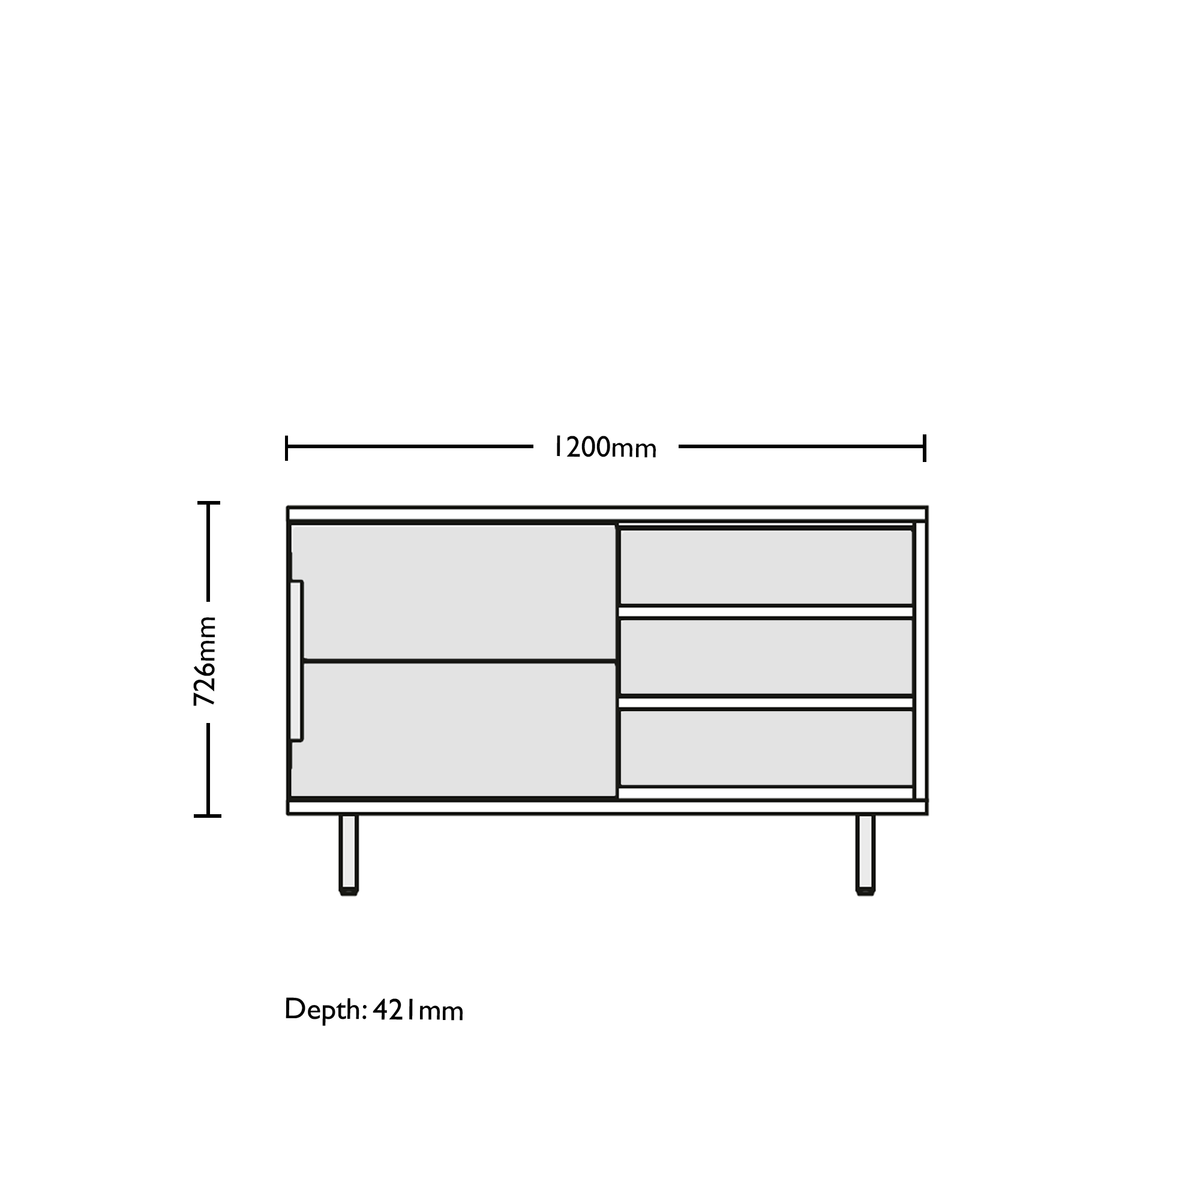 Dimensions for Edsbyn Office Part Sideboard 1200mmW